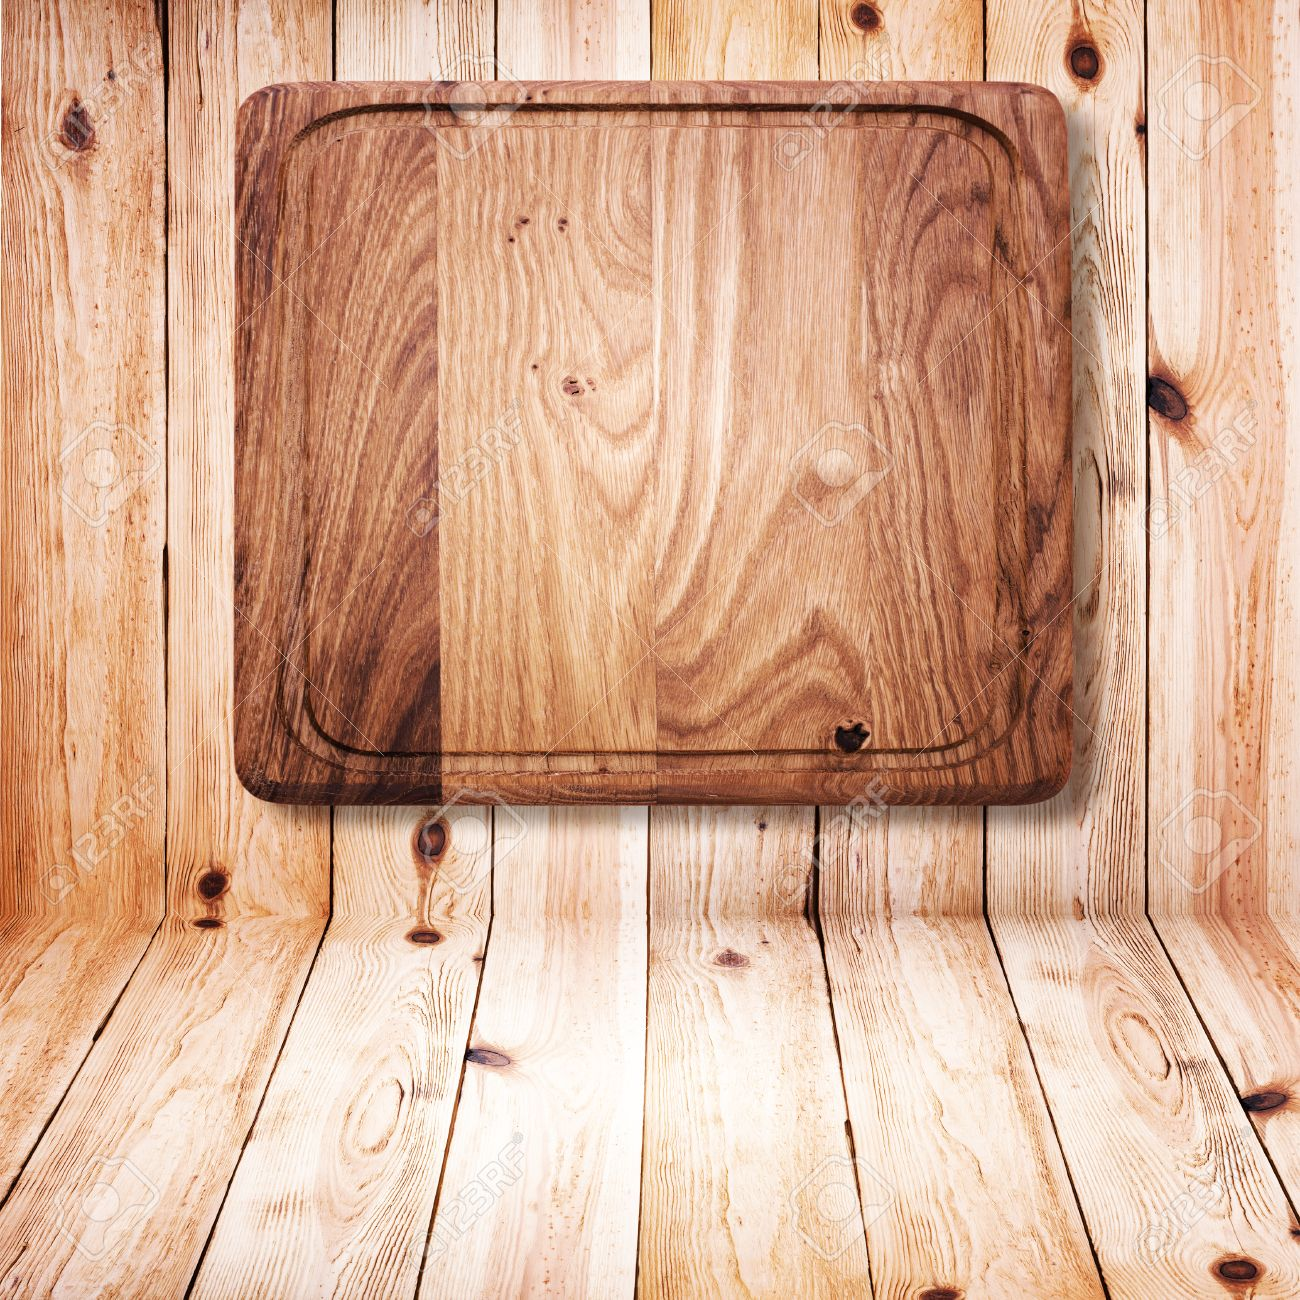 31084260 Wood texture Wooden kitchen cutting board close up Empty wooden table on white background for produc Stock Photo